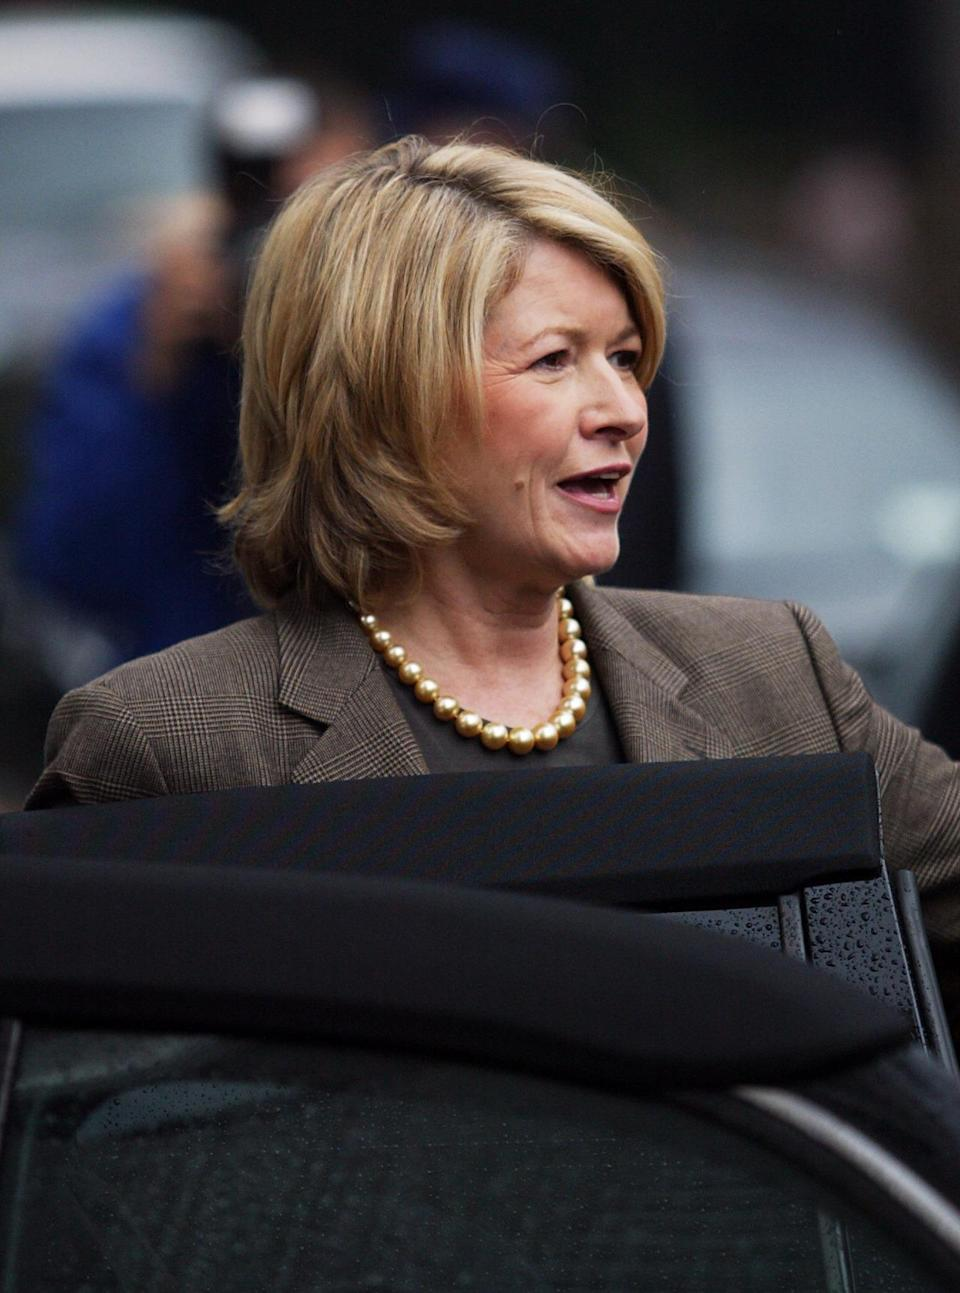 Martha Stewart may seem to have her shit together, but when the home-and-garden guru didn't pay taxes on her East Hampton mansion, Stewart owed the government $220,000. (Photo: Getty Images)